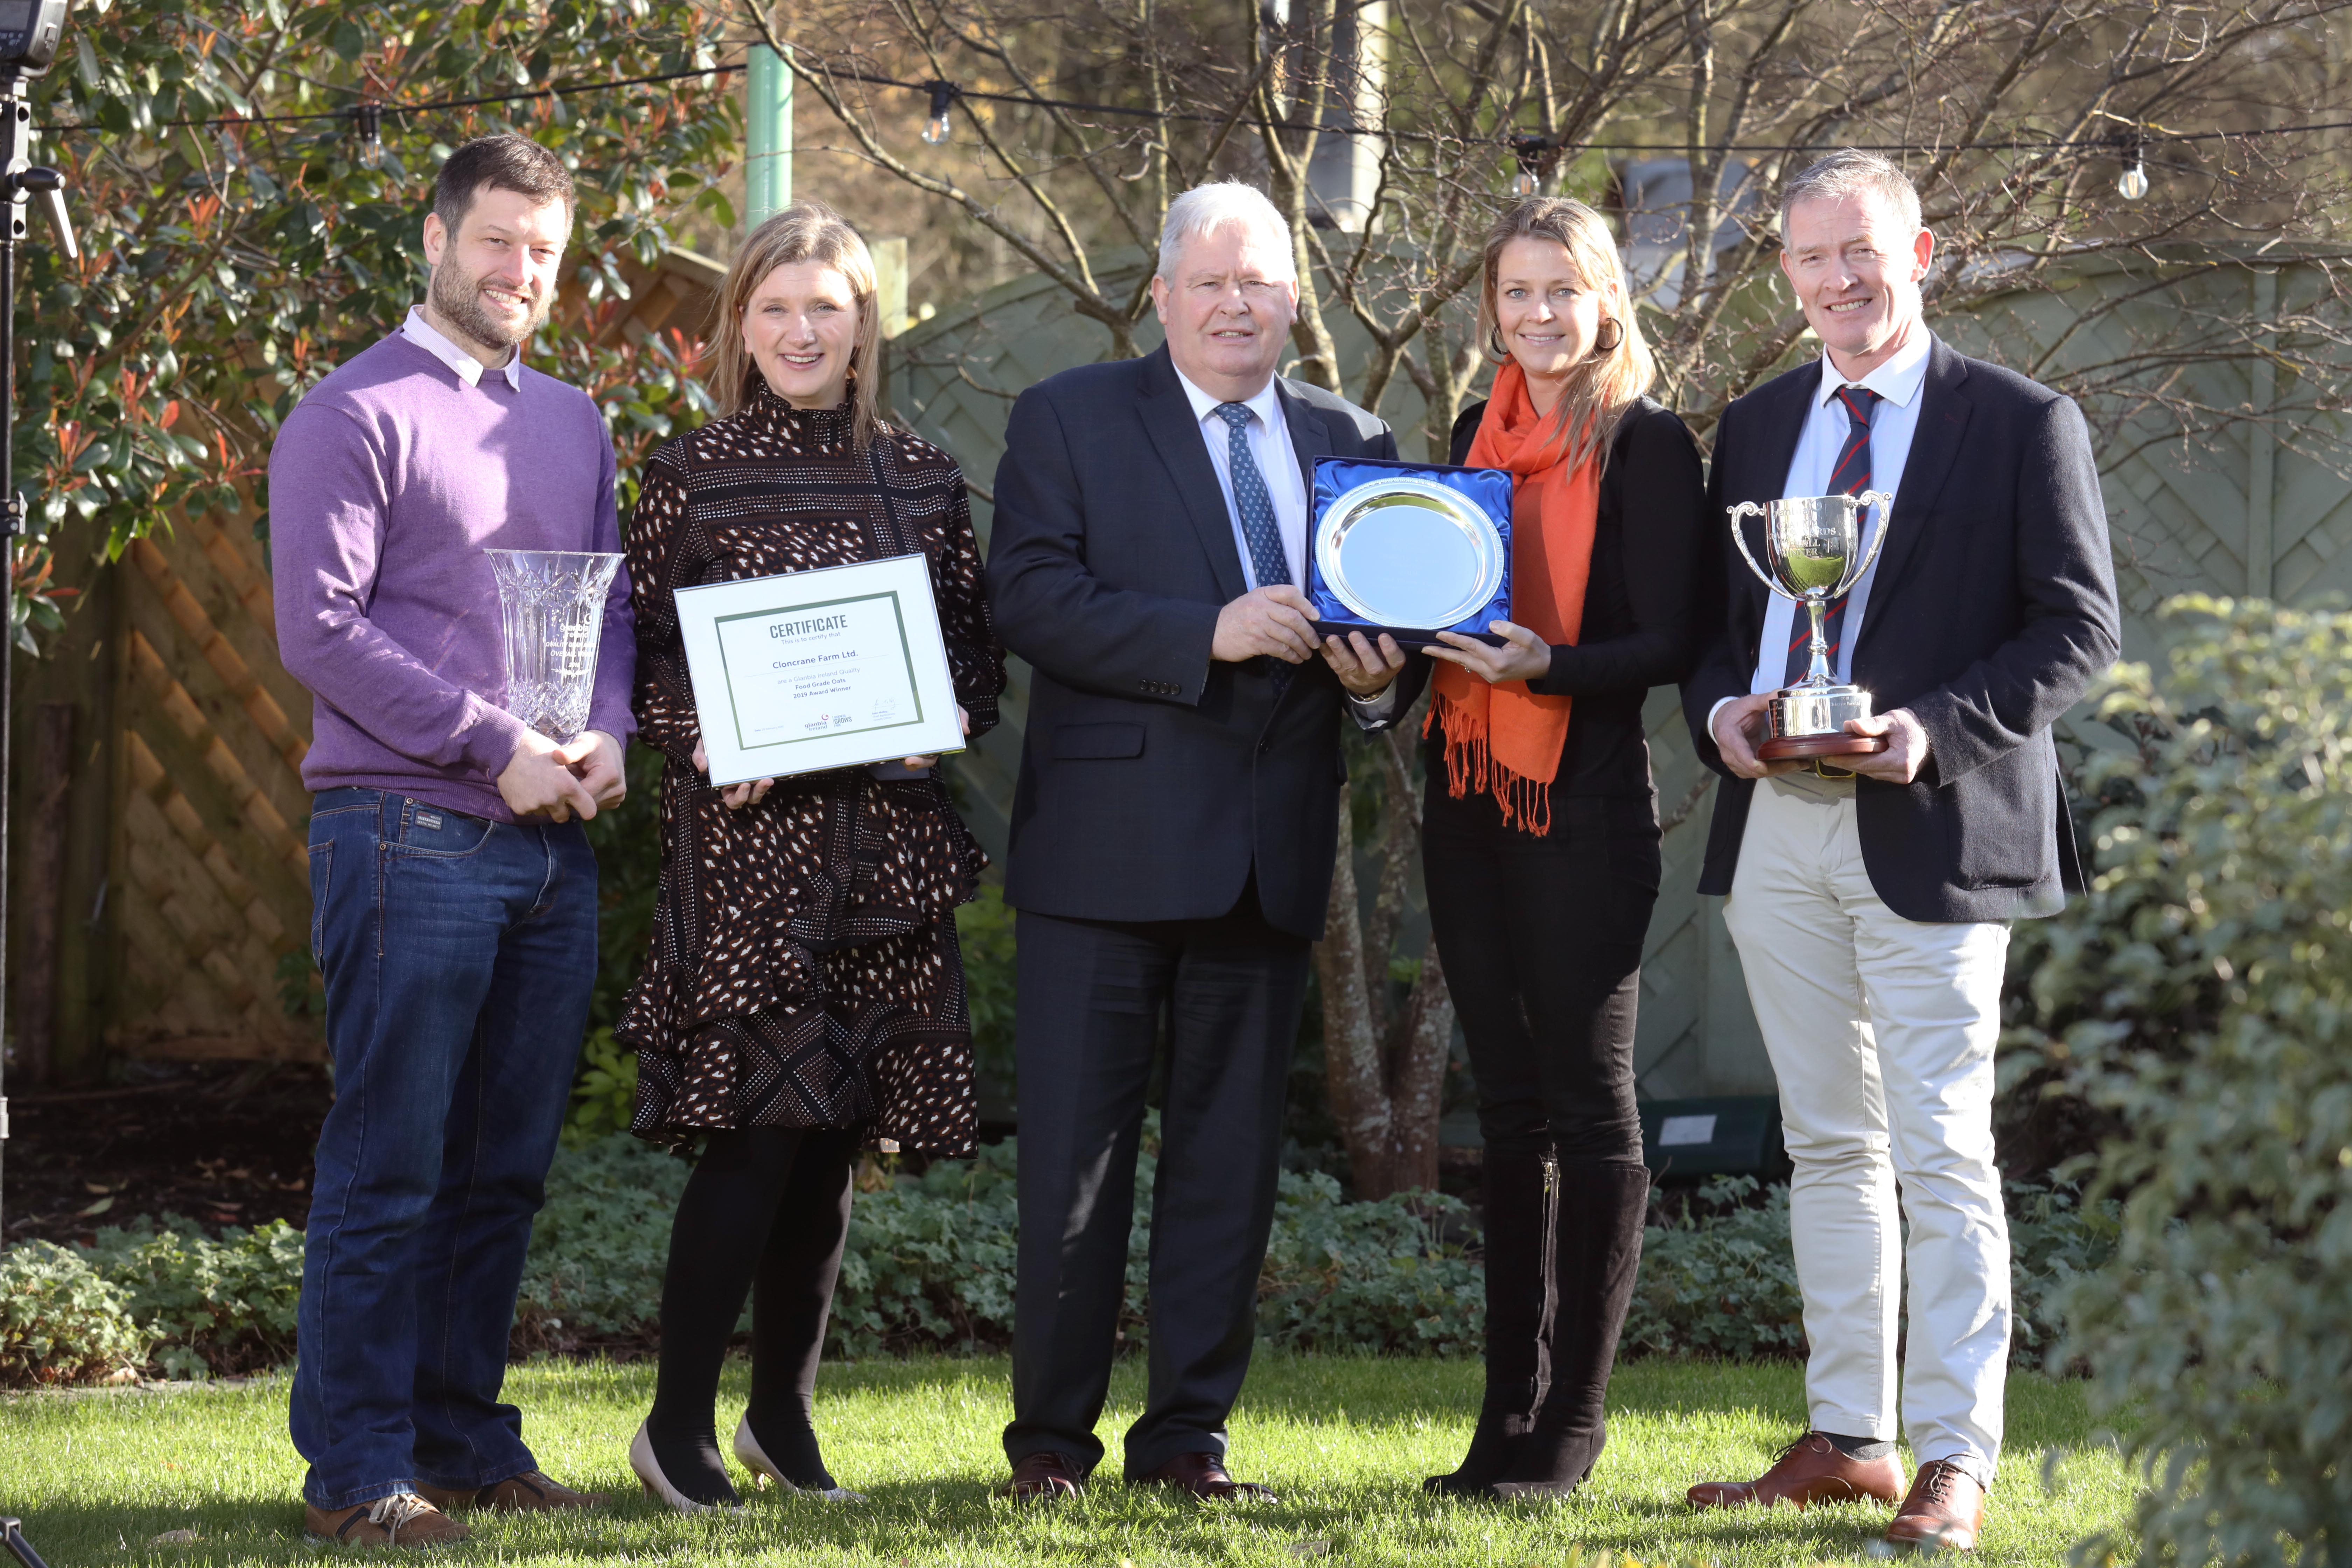 Offaly takes Glanbia's Grain Supplier of the Year Award